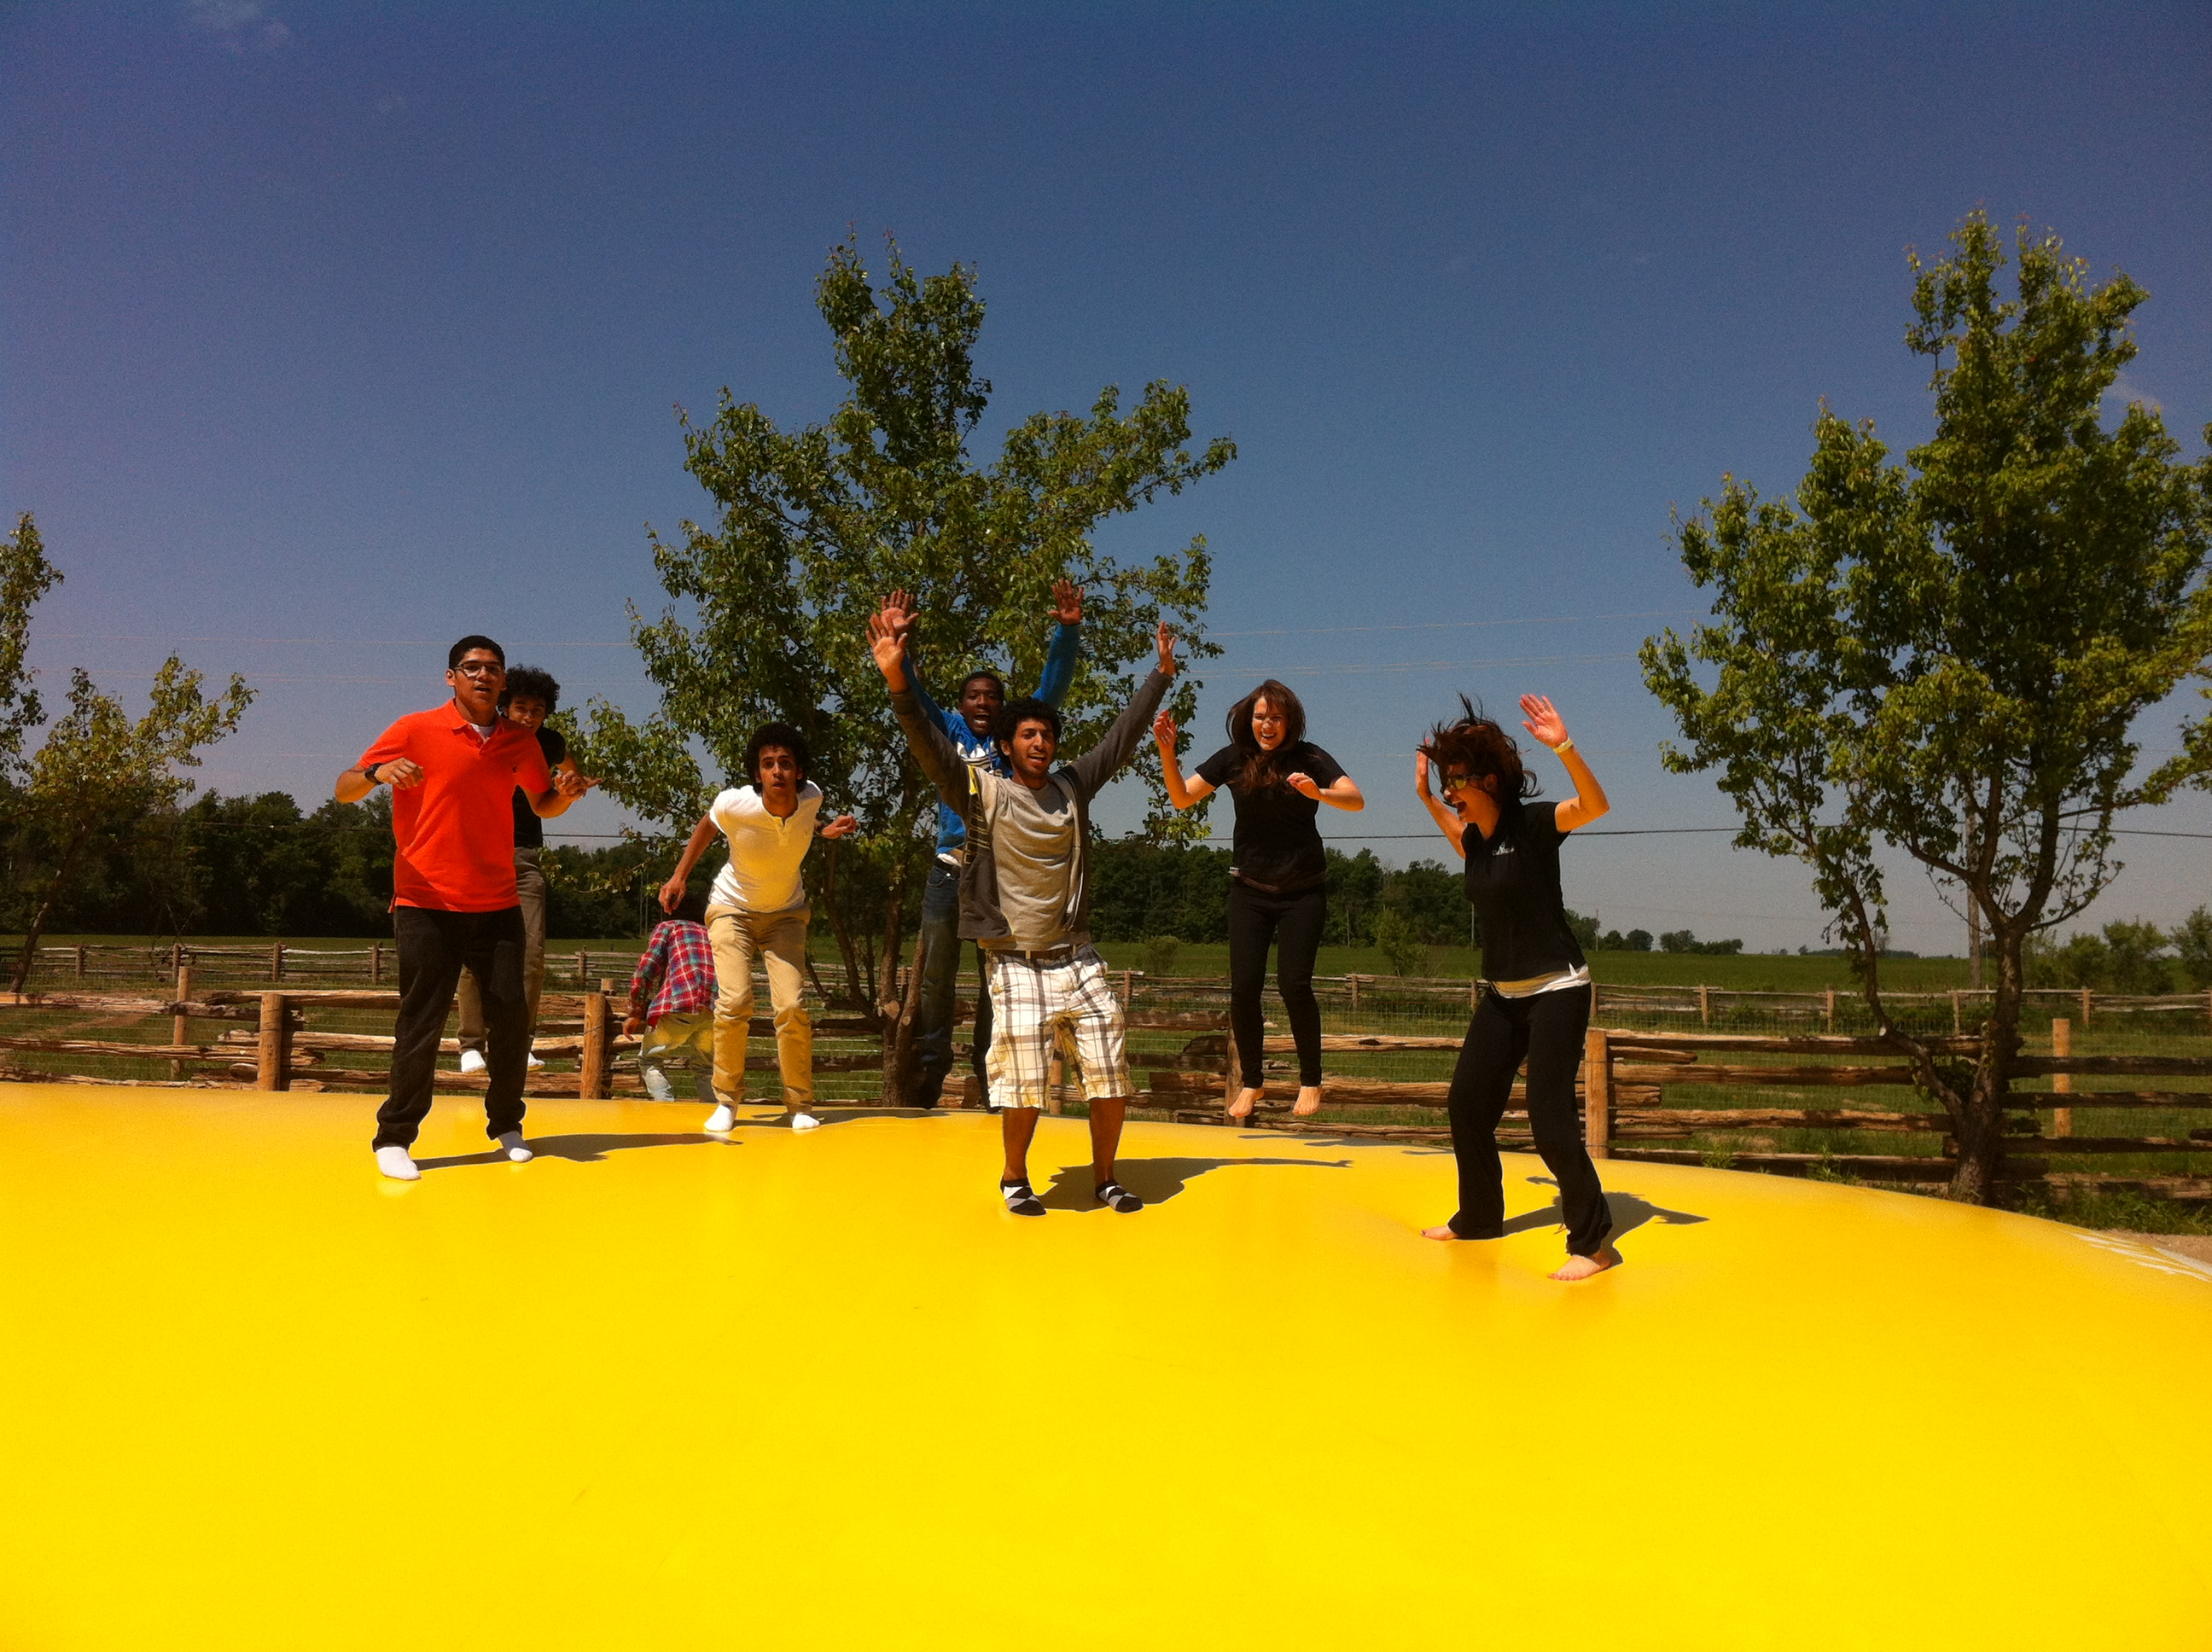 Students and teachers enjoy the giant jumping pillow at Clovermead Adventure Farm